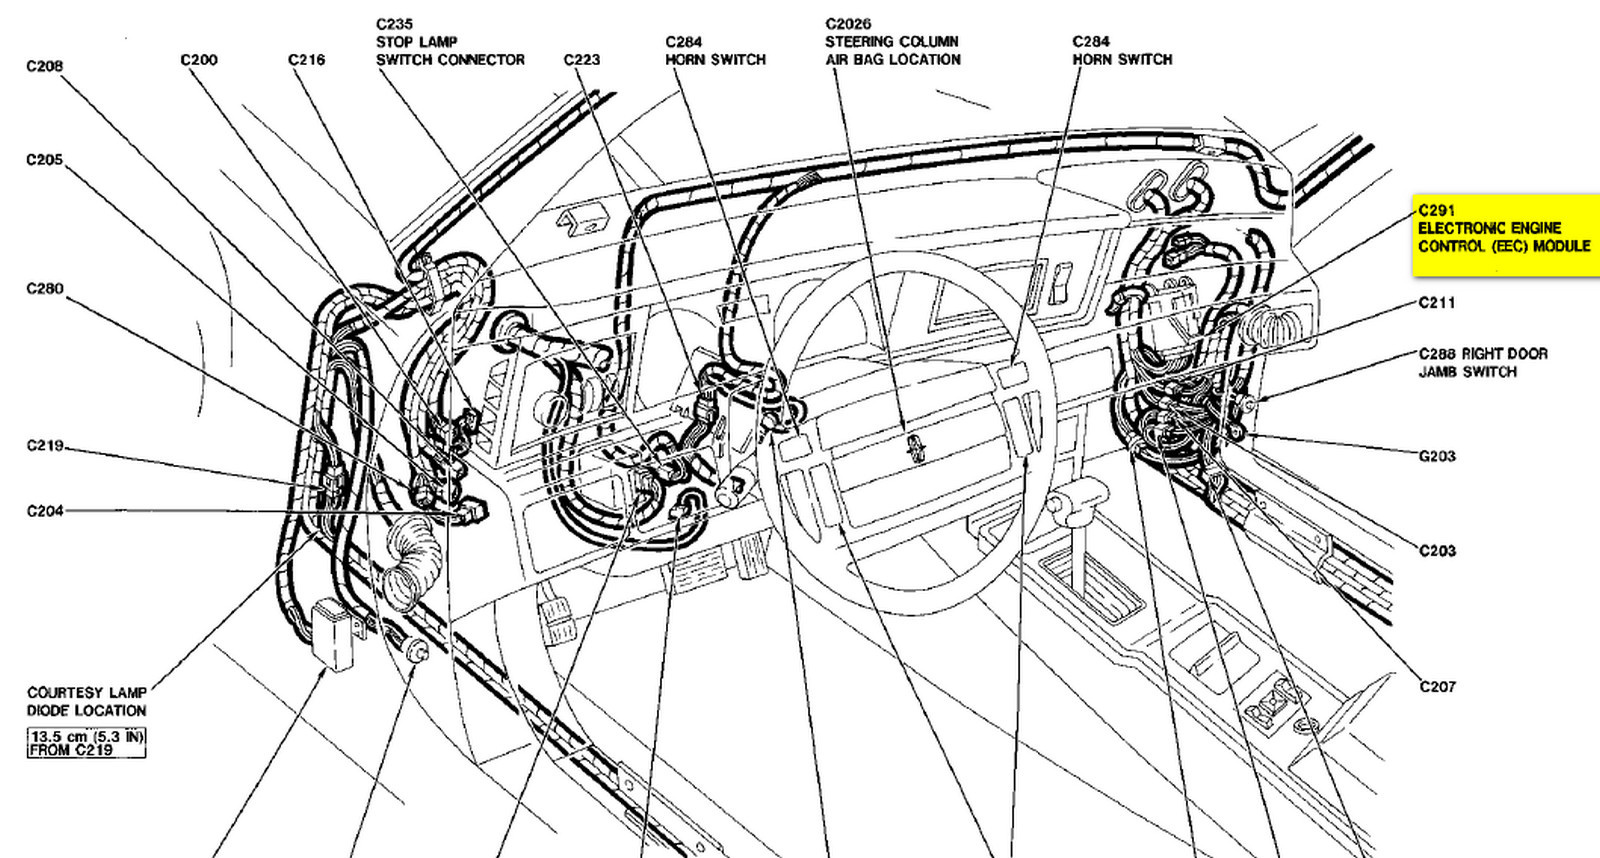 84 Mustang Fuse Box Location Wiring Schematics Diagram 1969 Corvette Lincoln Mark Vii Questions Where Is The Ecm For Engine Located